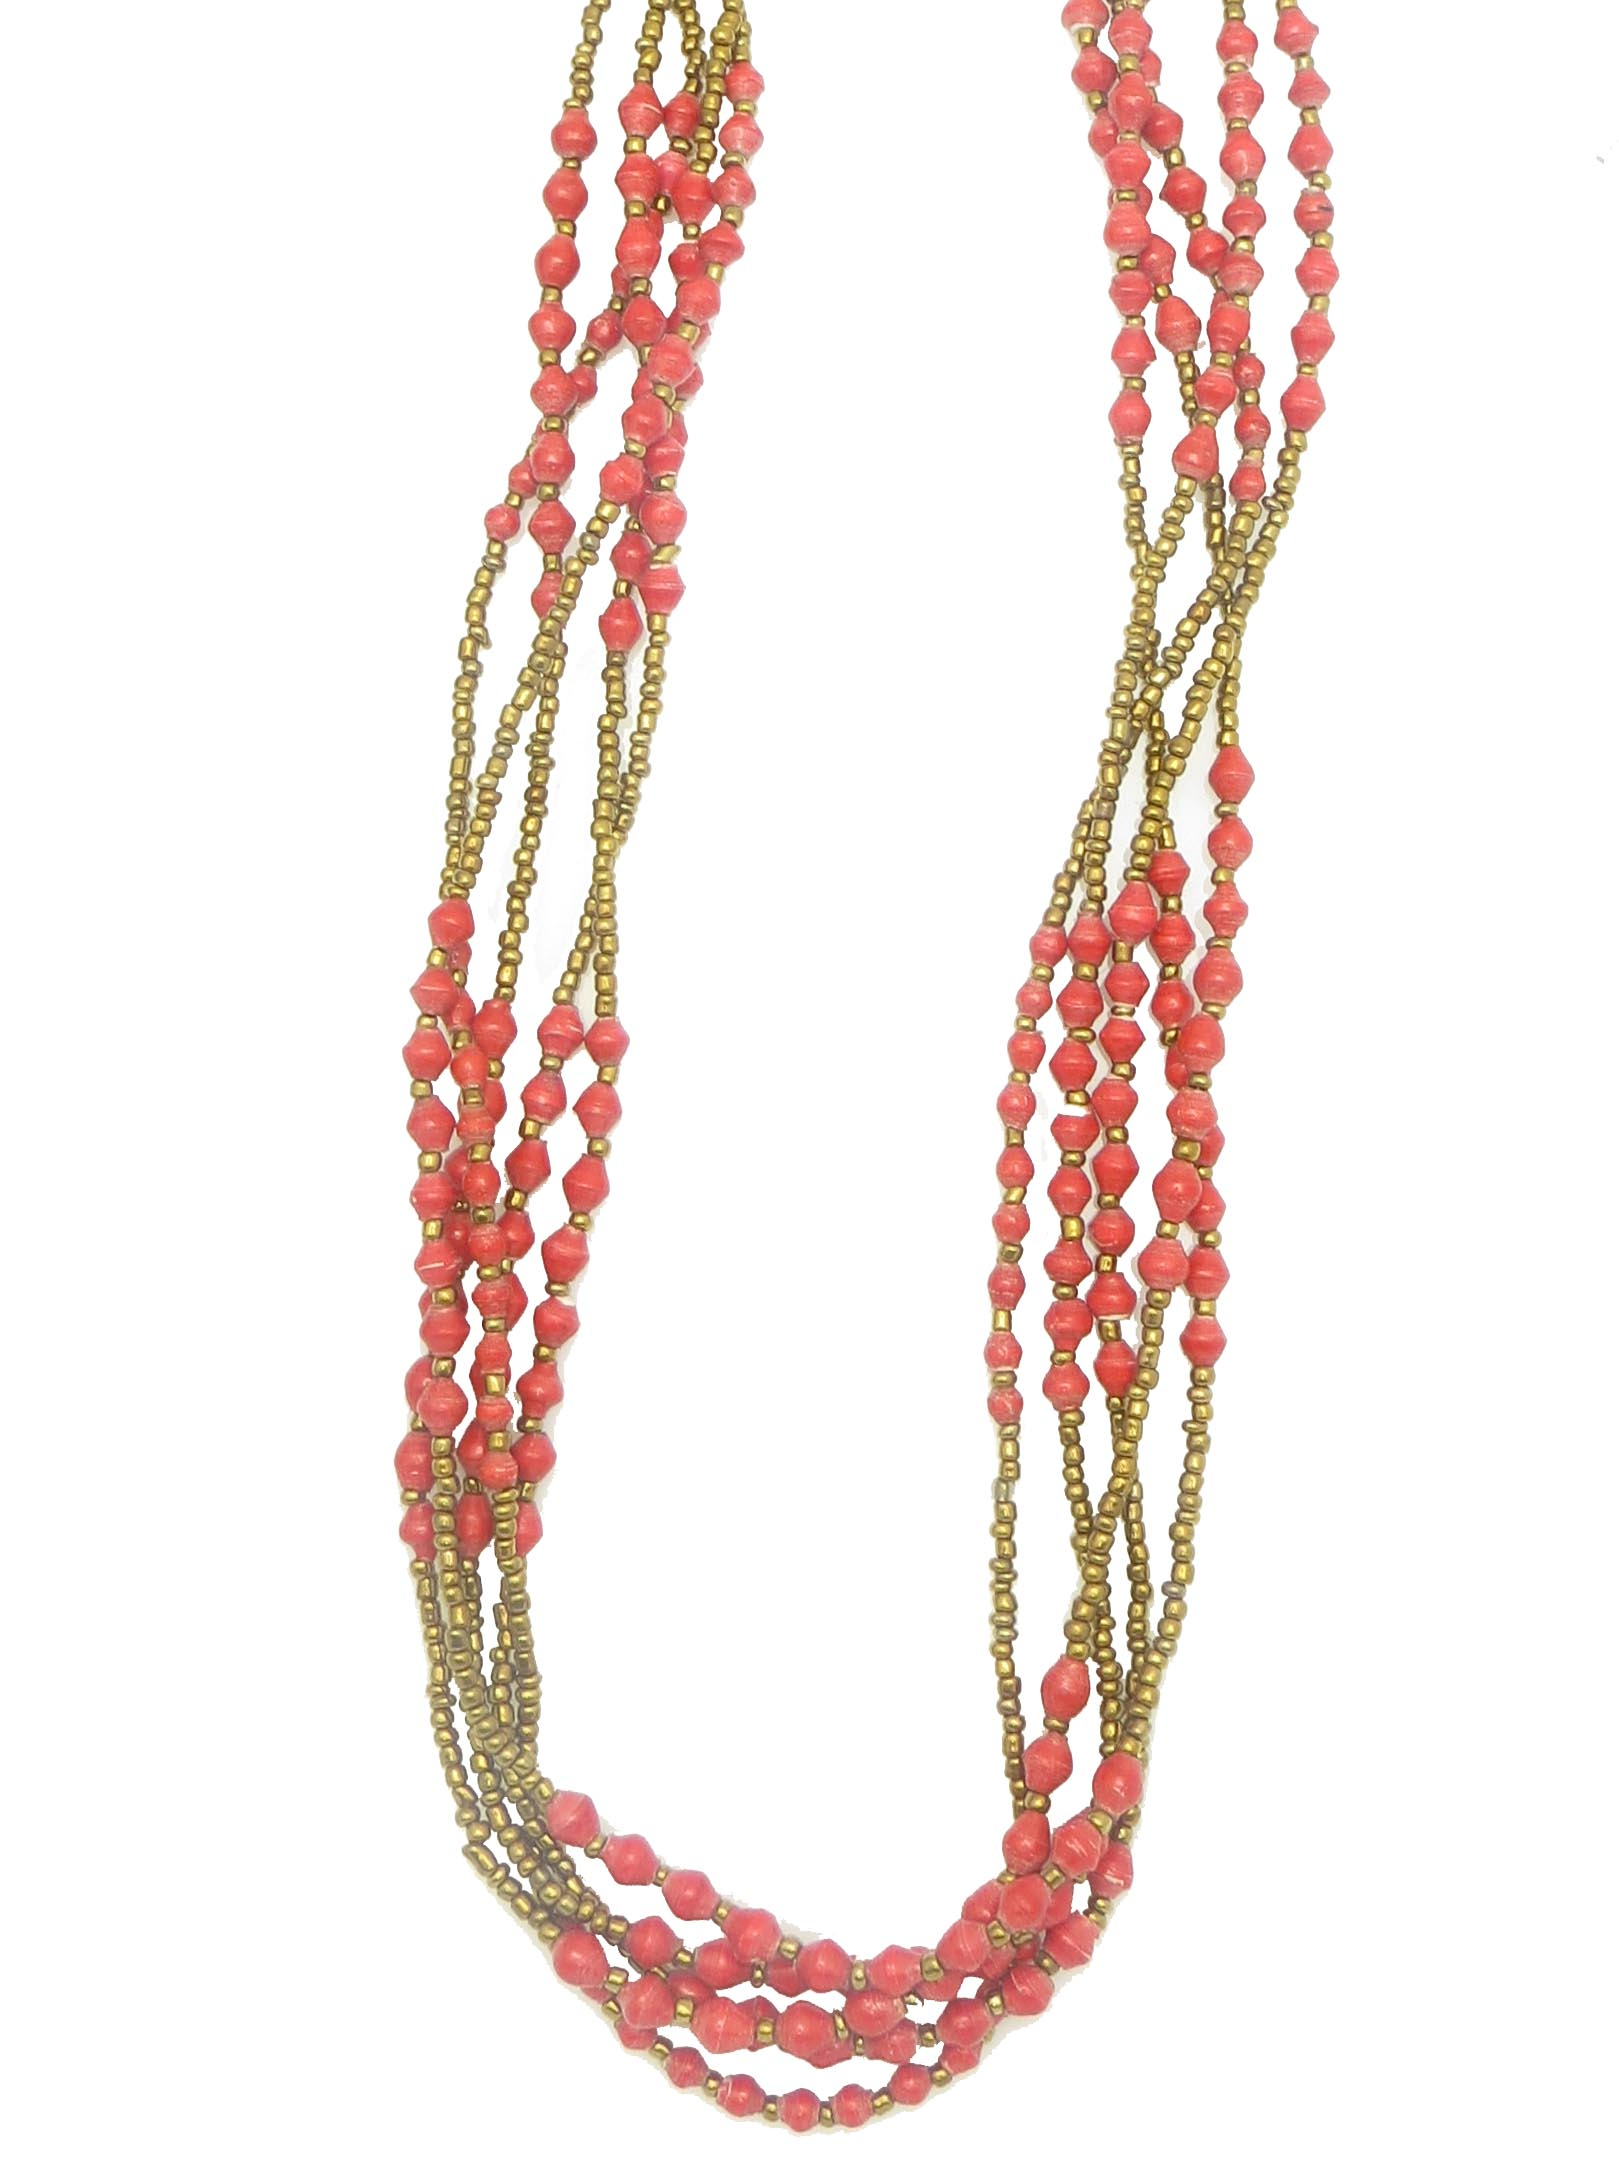 Specialty gold and red necklace